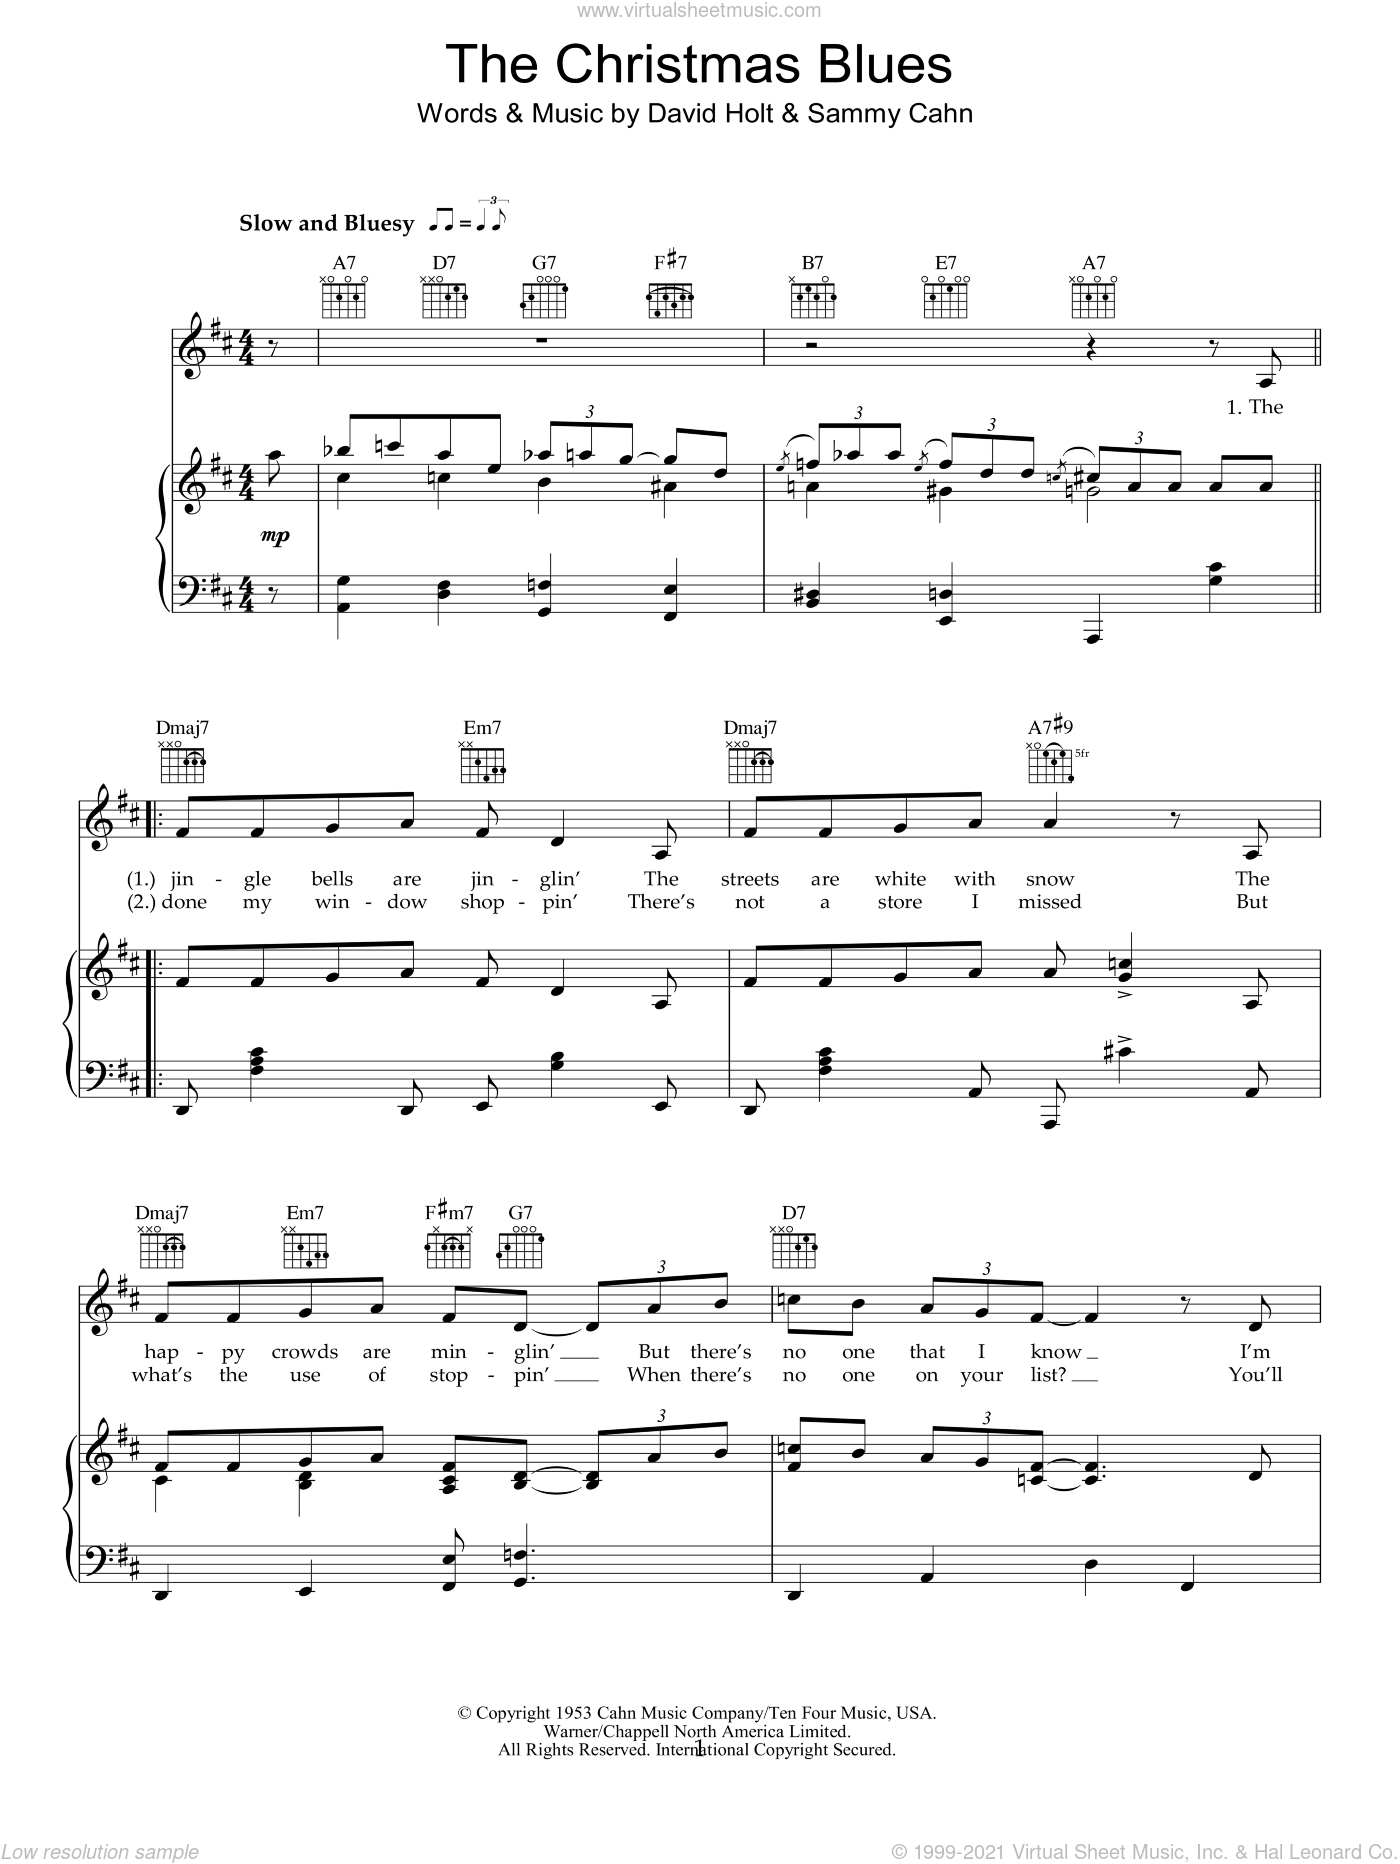 Dylan - The Christmas Blues sheet music for voice, piano or guitar